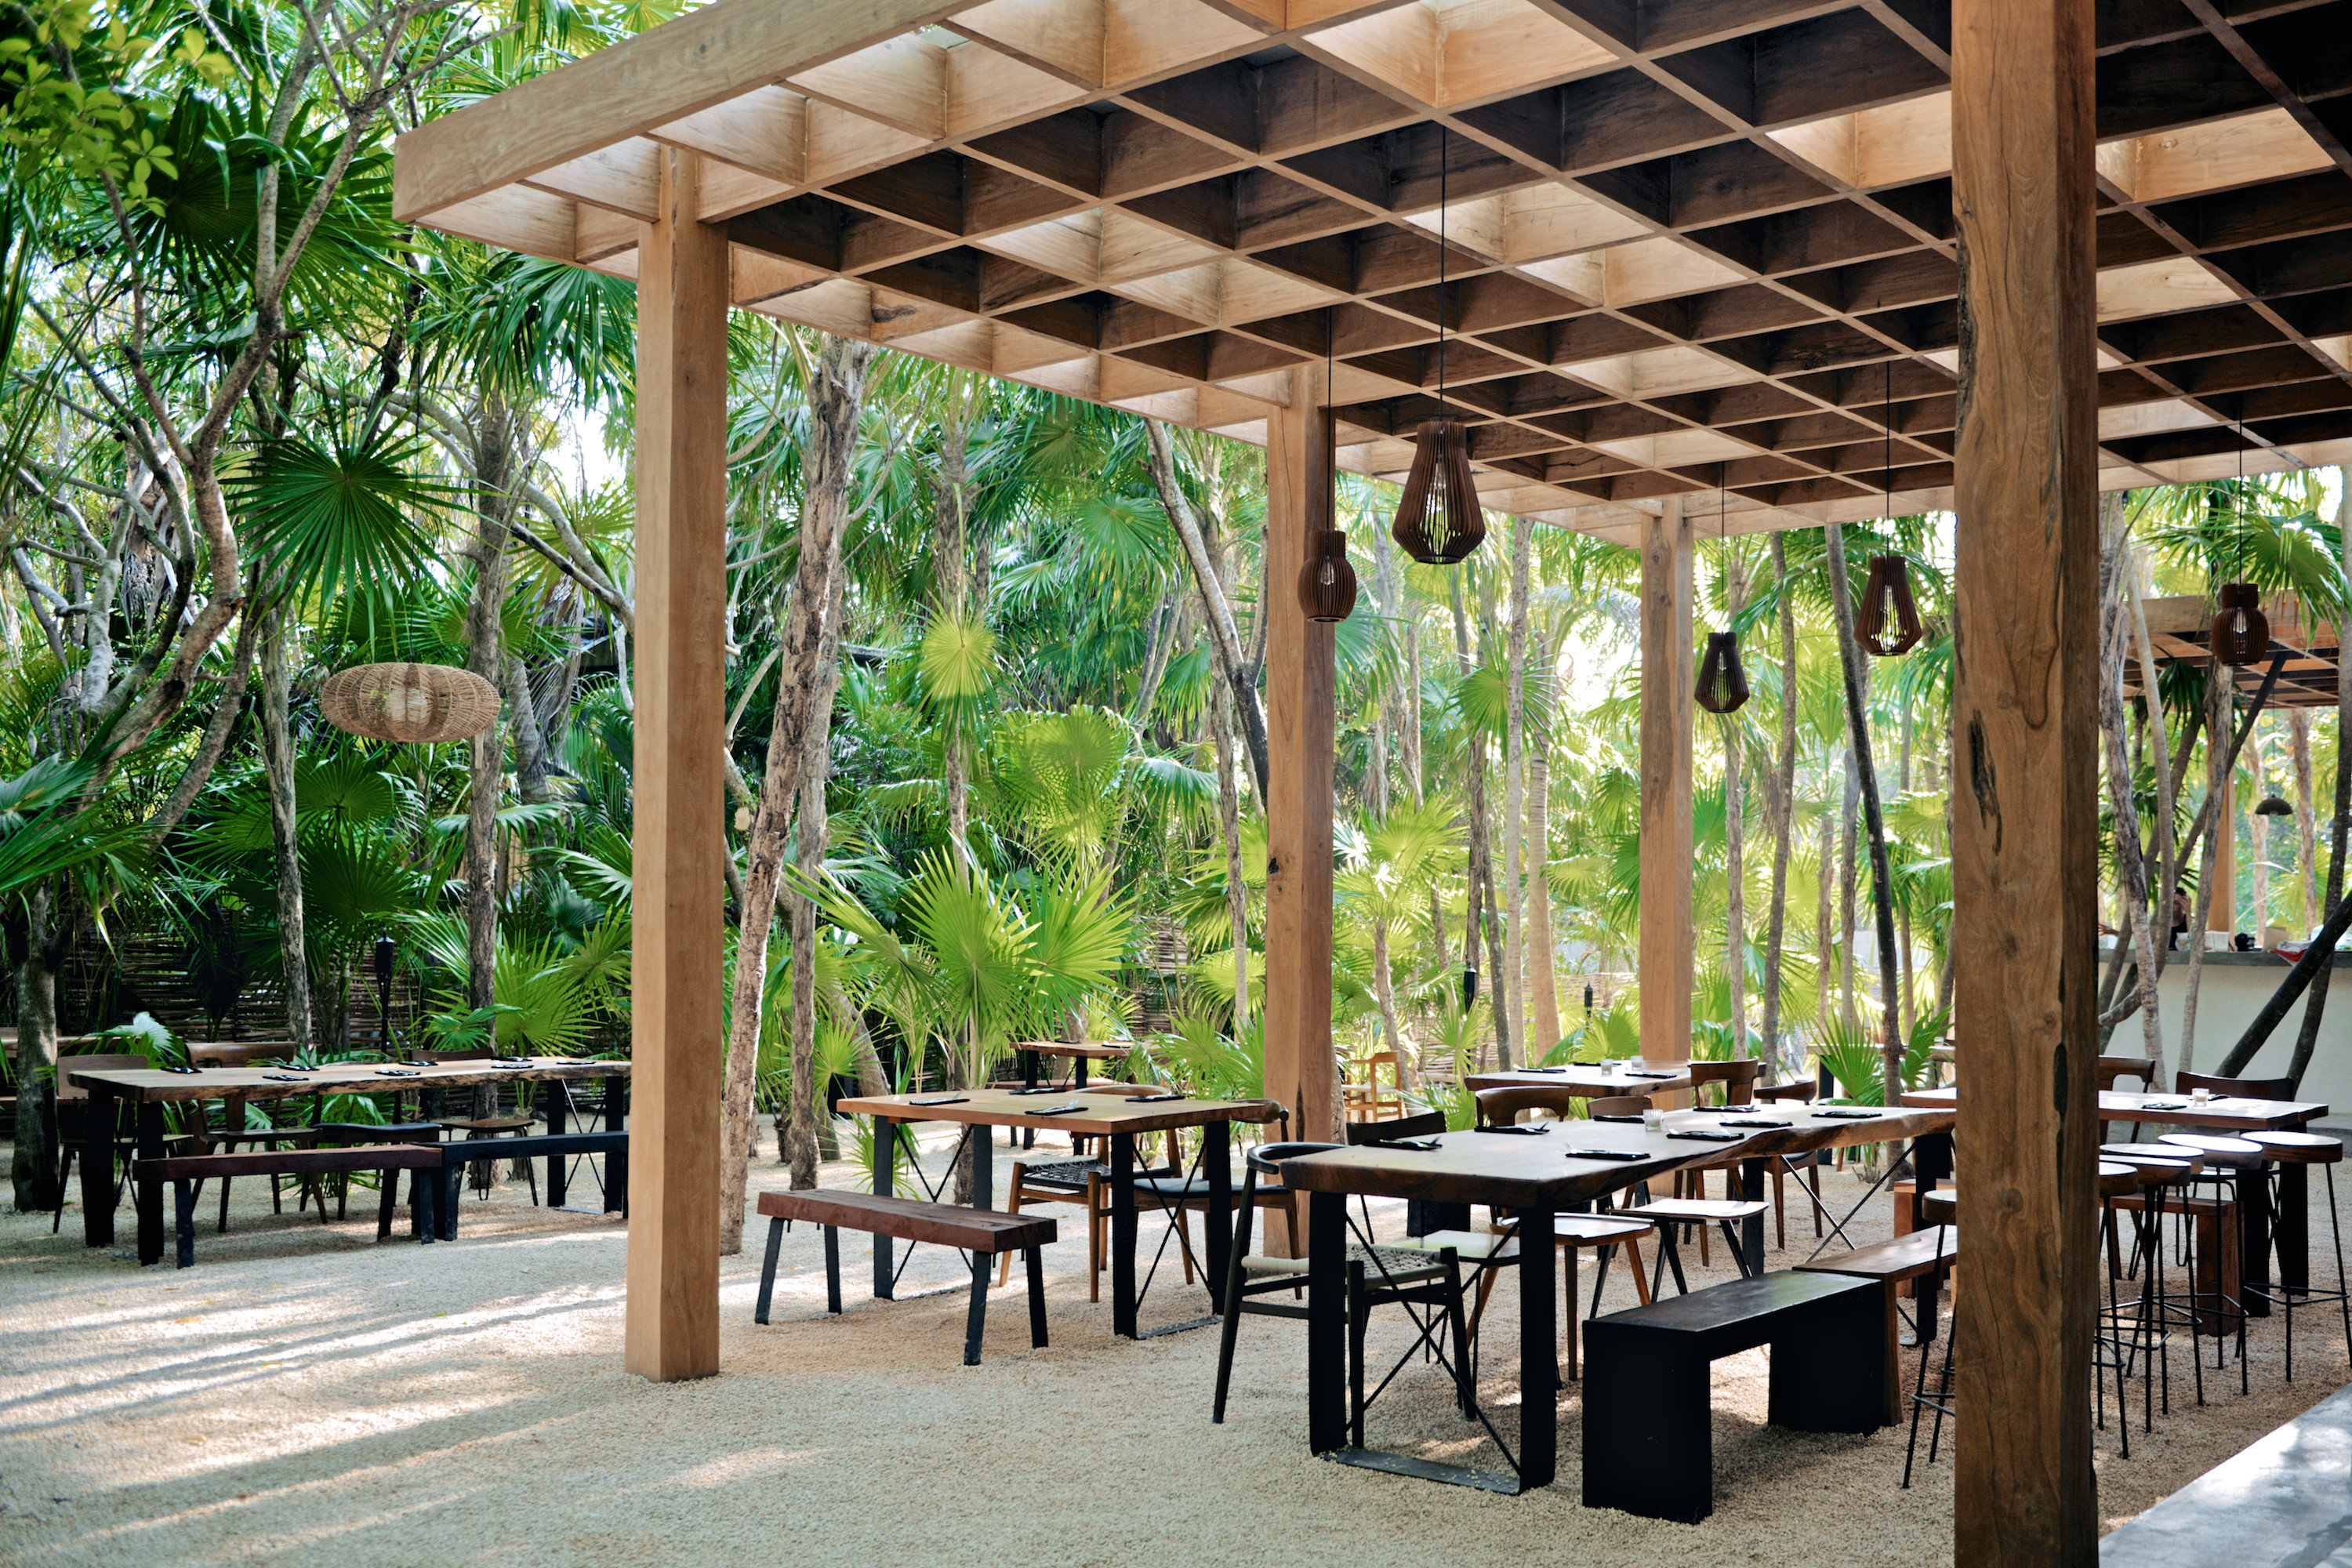 City Mexico Trip Ideas Tulum plant tree Resort outdoor structure pavilion table pergola Patio leisure arecales gazebo